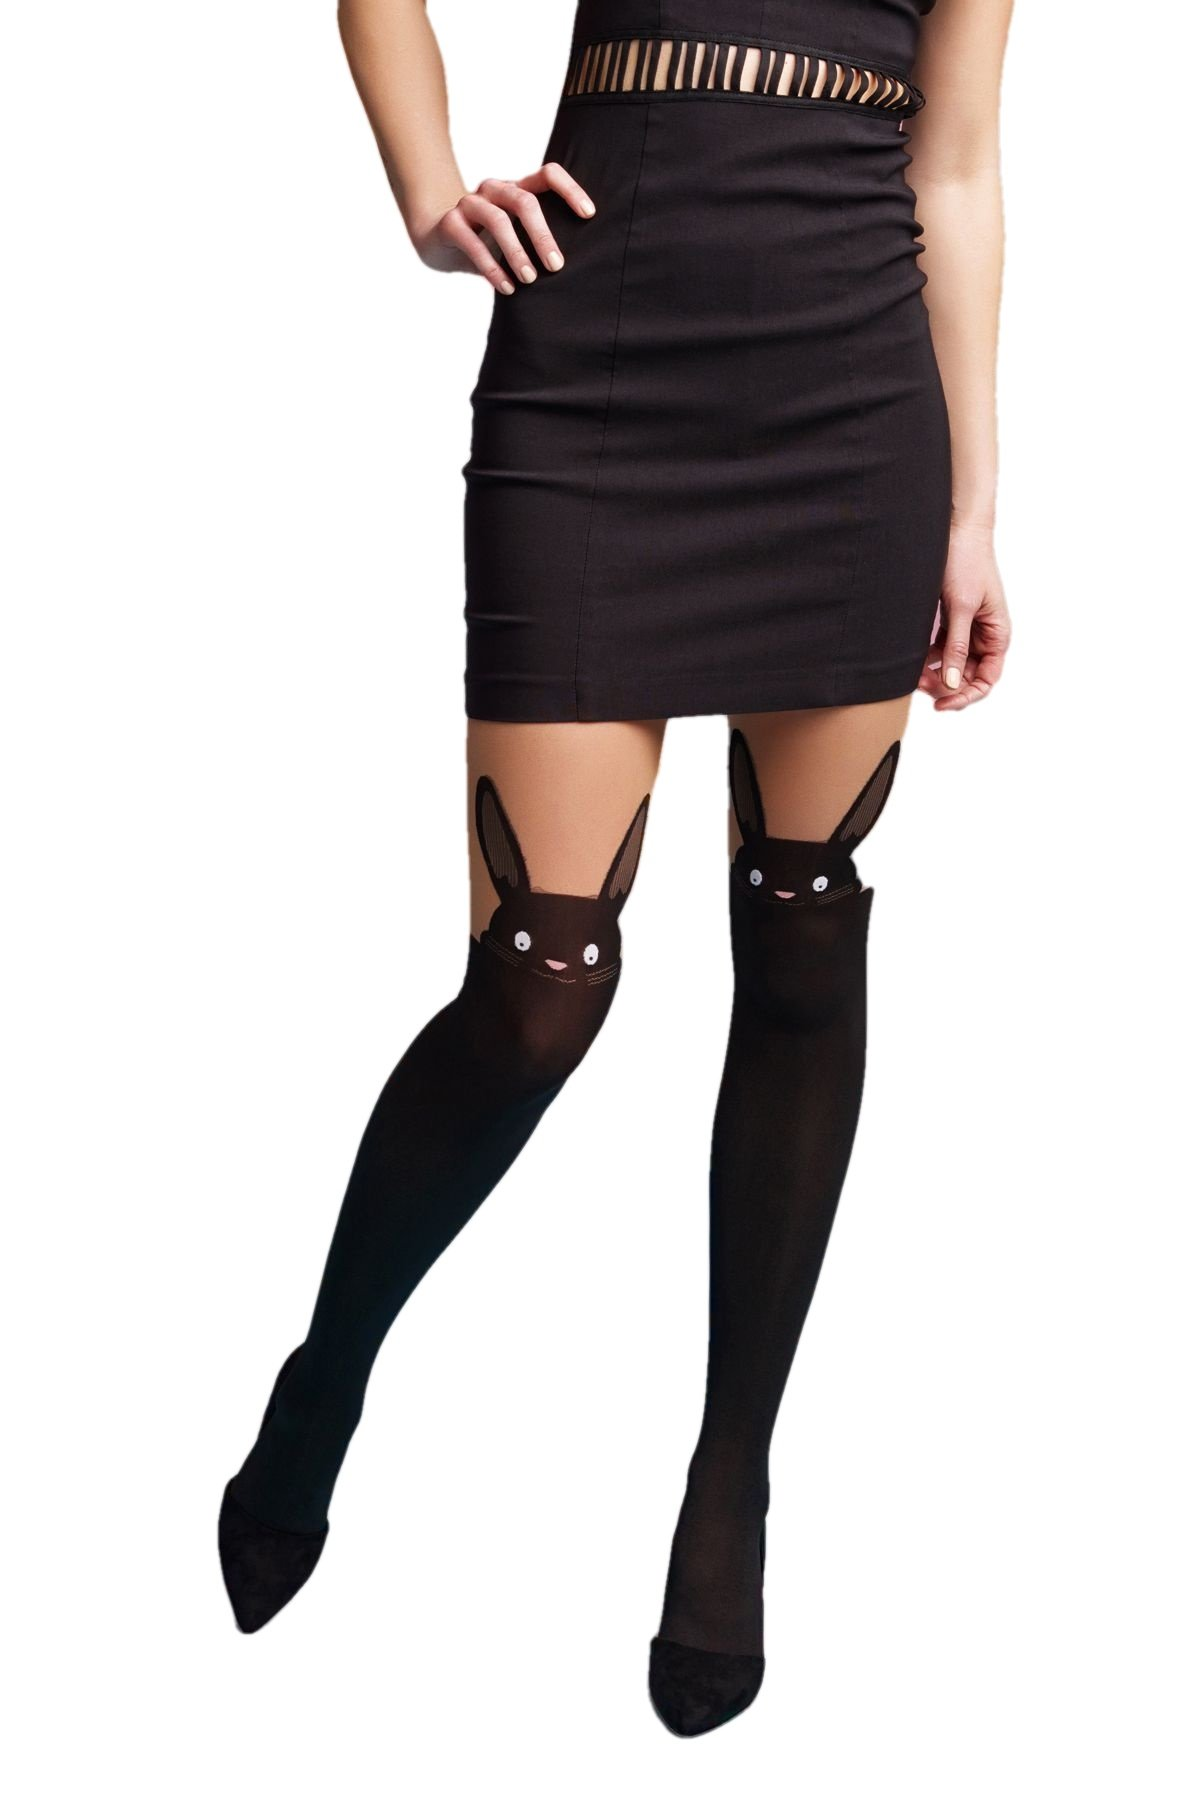 Floralby Women Candy Colors Velvet Opaque Footed Socks Tights Slim Pantyhose Stockings